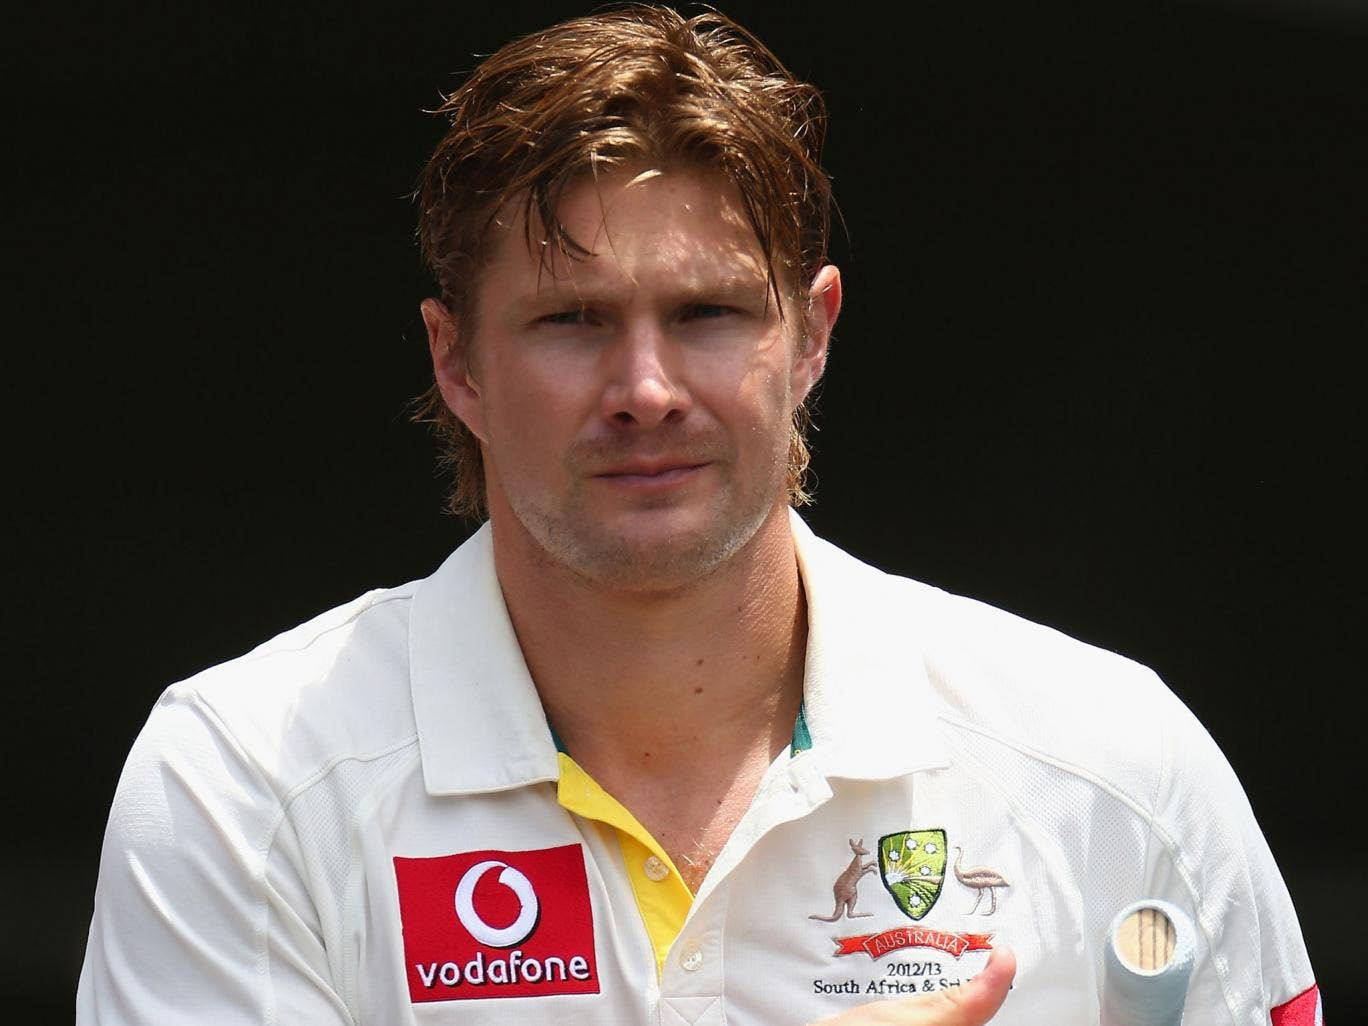 Australia vice-captain Shane Watson has been dropped from the next Test against India